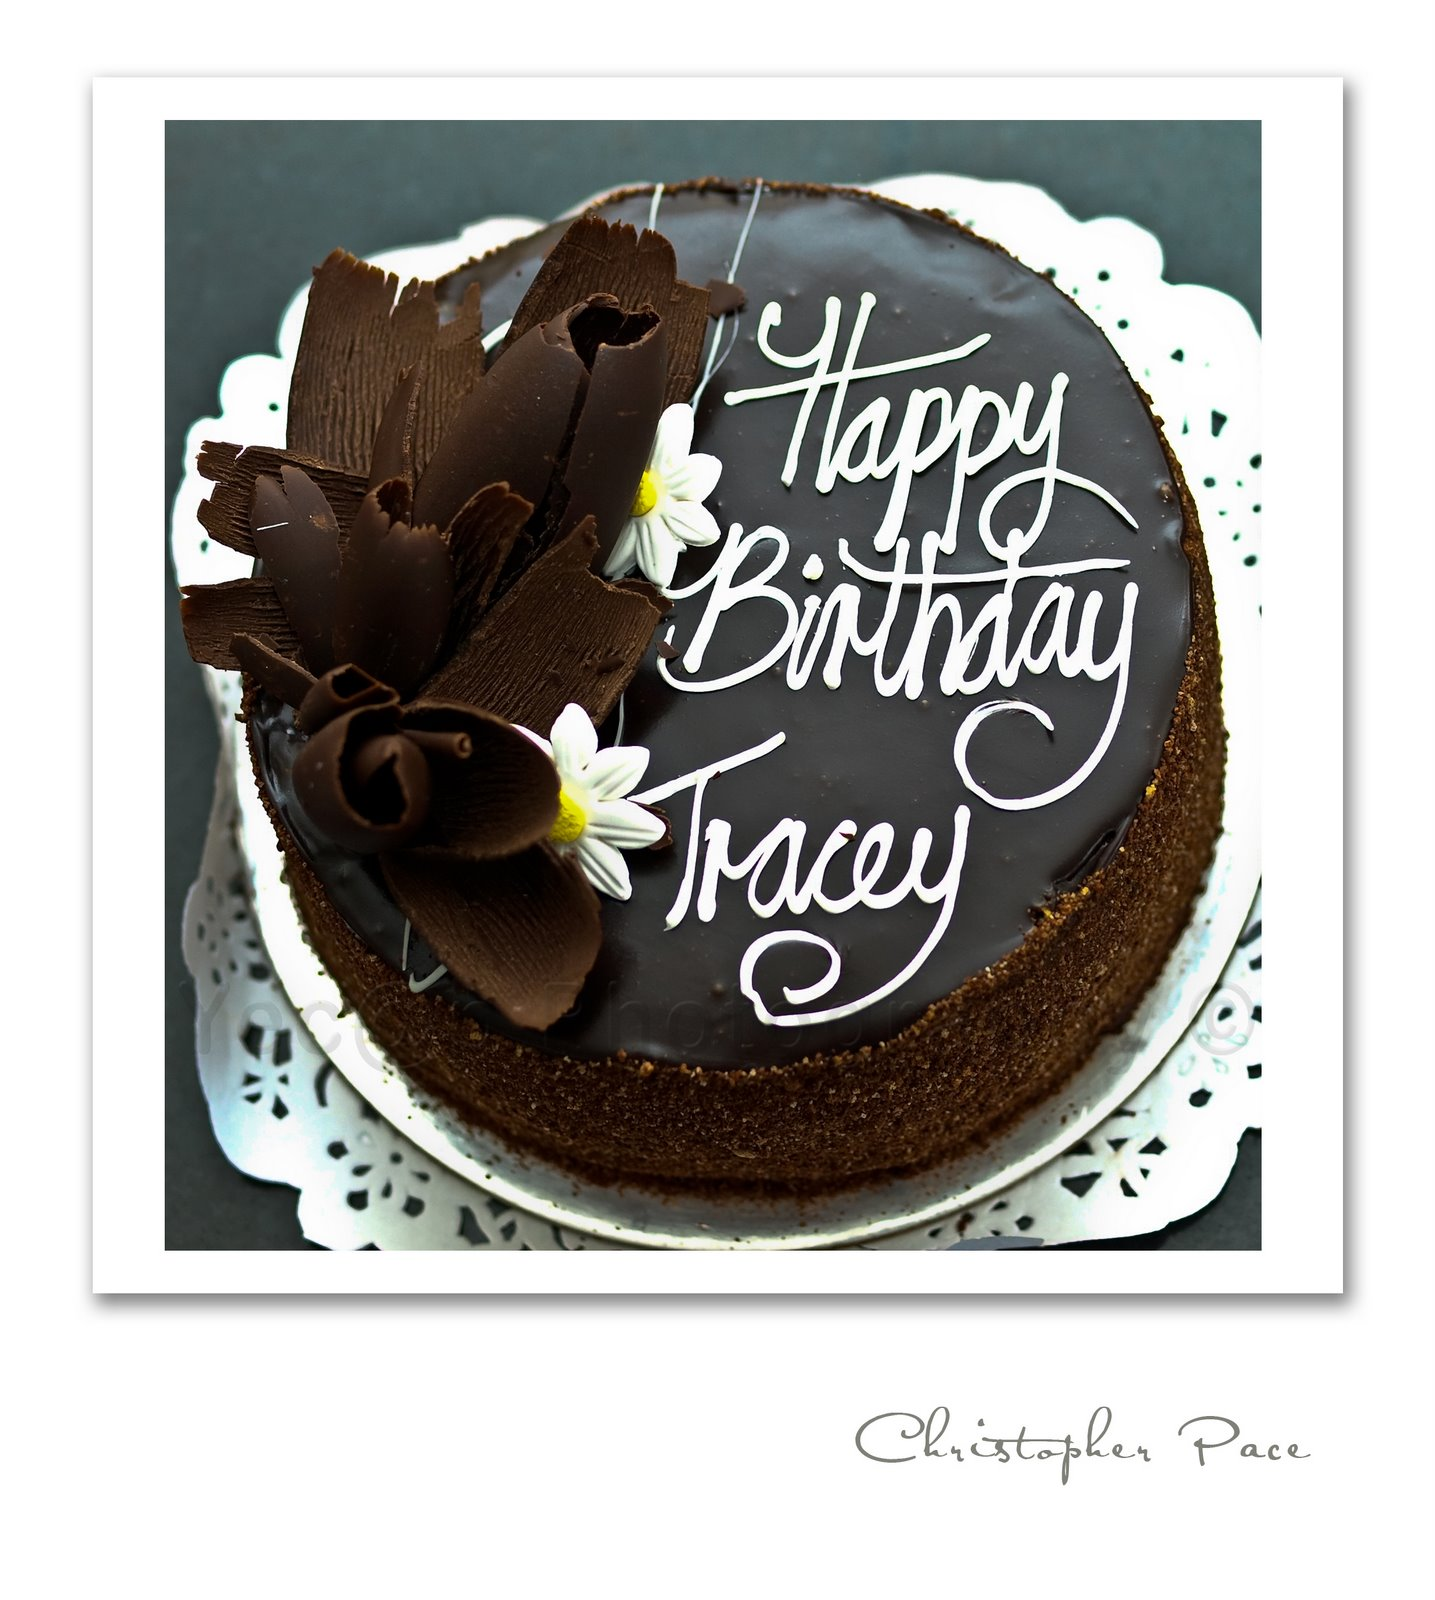 happy birthday tracey images ; Happy%252BB%252527day%252BTracey